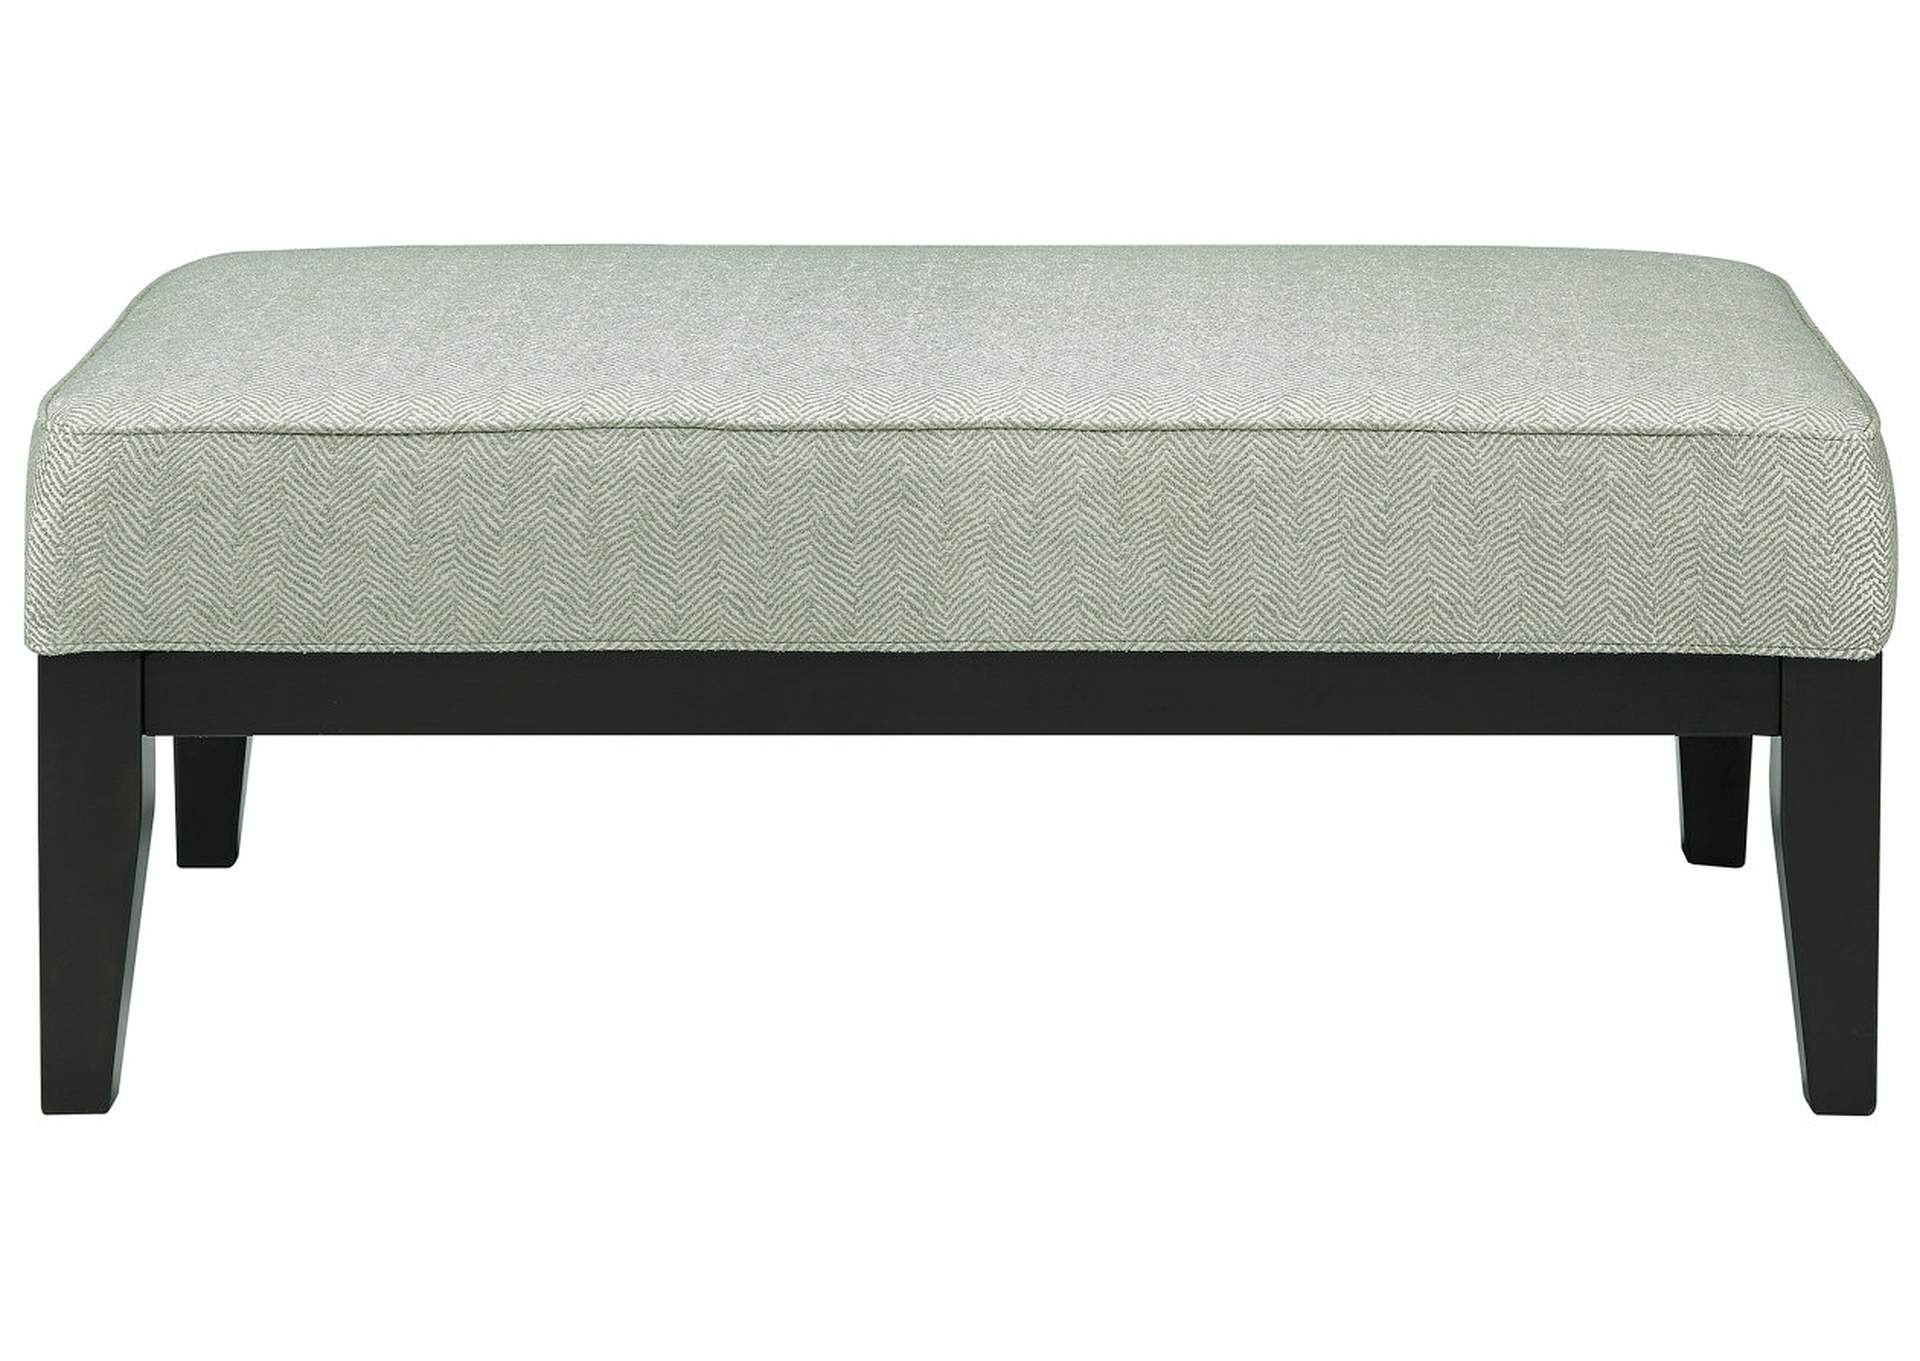 Kilarney Mist Oversized Accent Ottoman,Signature Design By Ashley